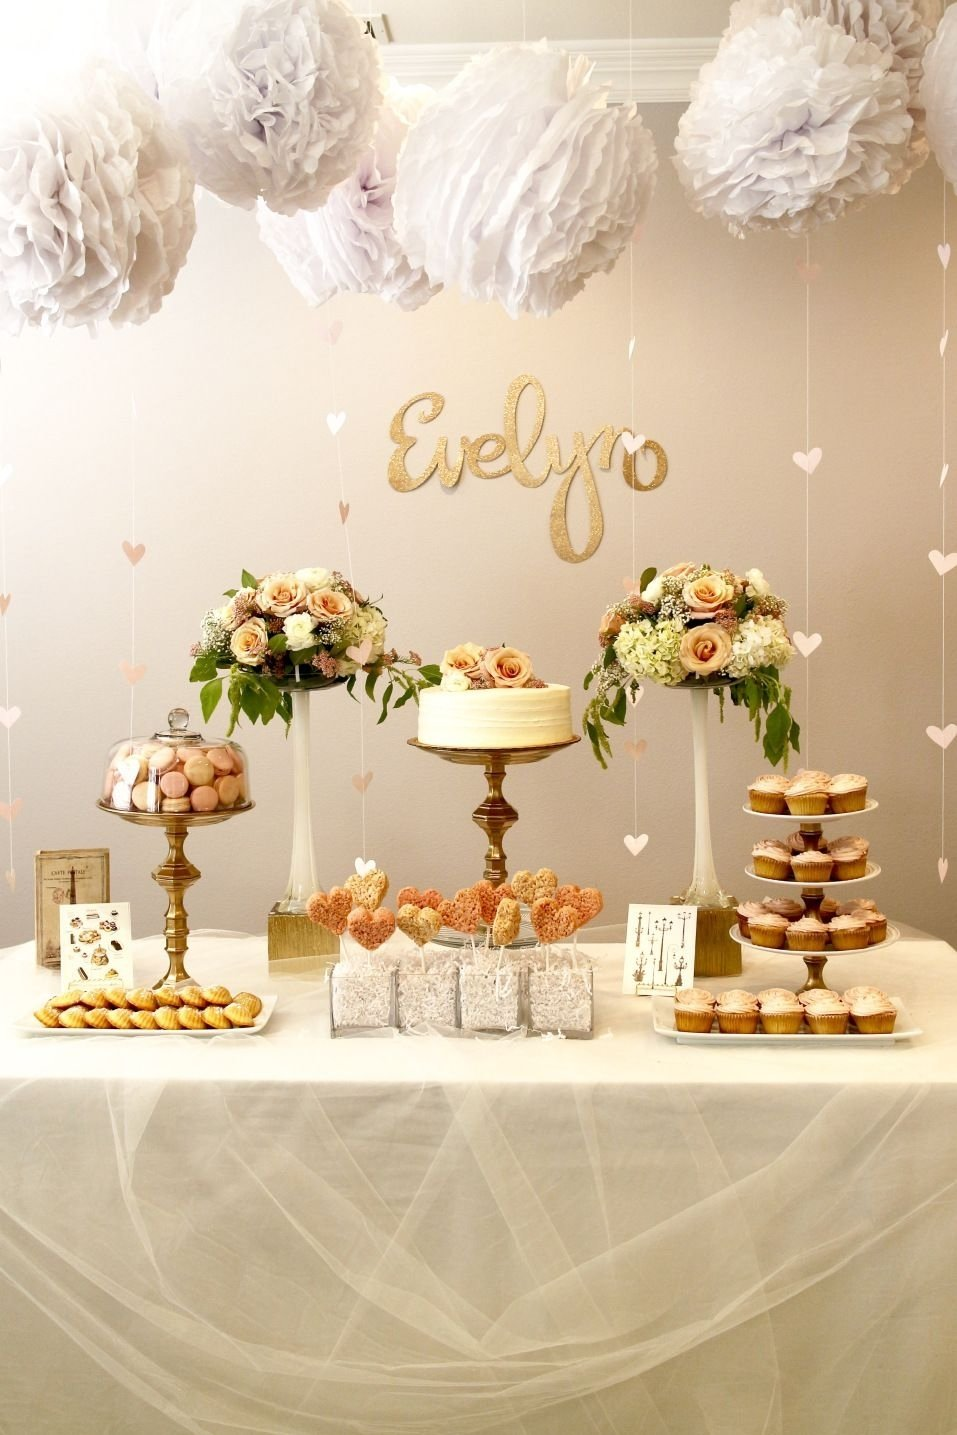 10 Unique Golden Birthday Party Ideas For Adults bon anniversaire blush pink feminine and romantic 2020